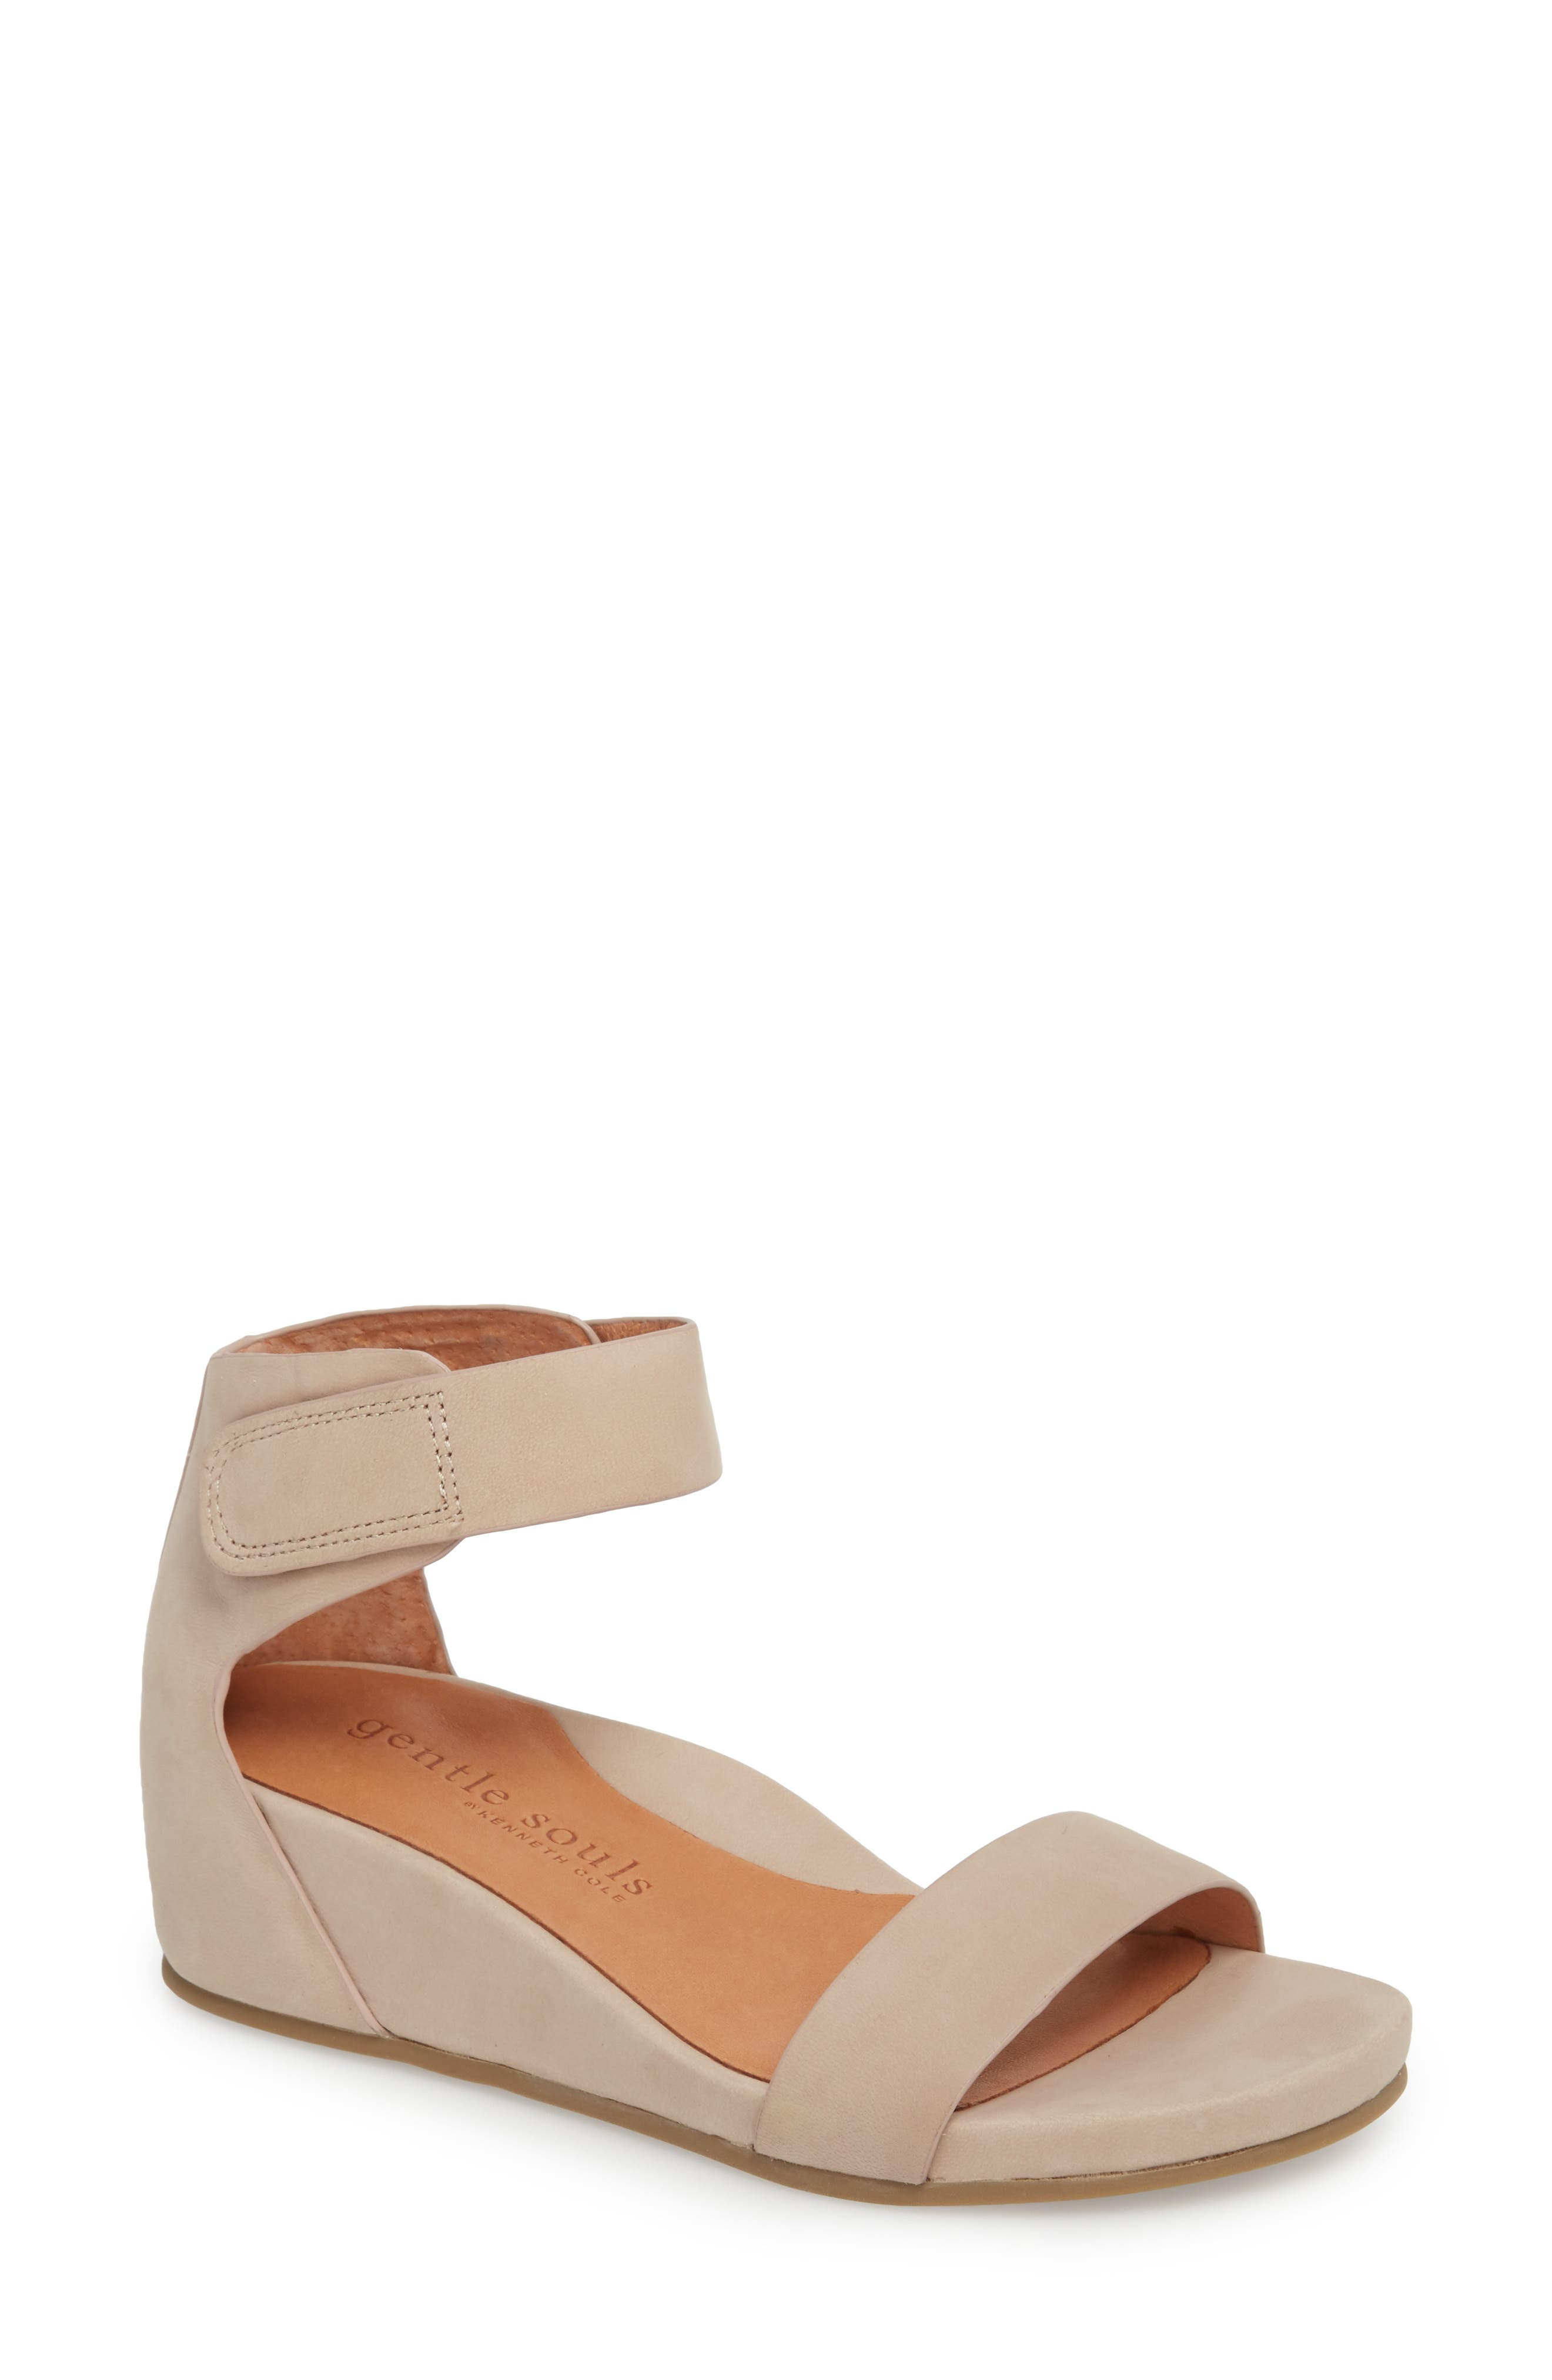 by Kenneth Cole Gianna Wedge Sandal,                             Main thumbnail 1, color,                             Mushroom Nubuck